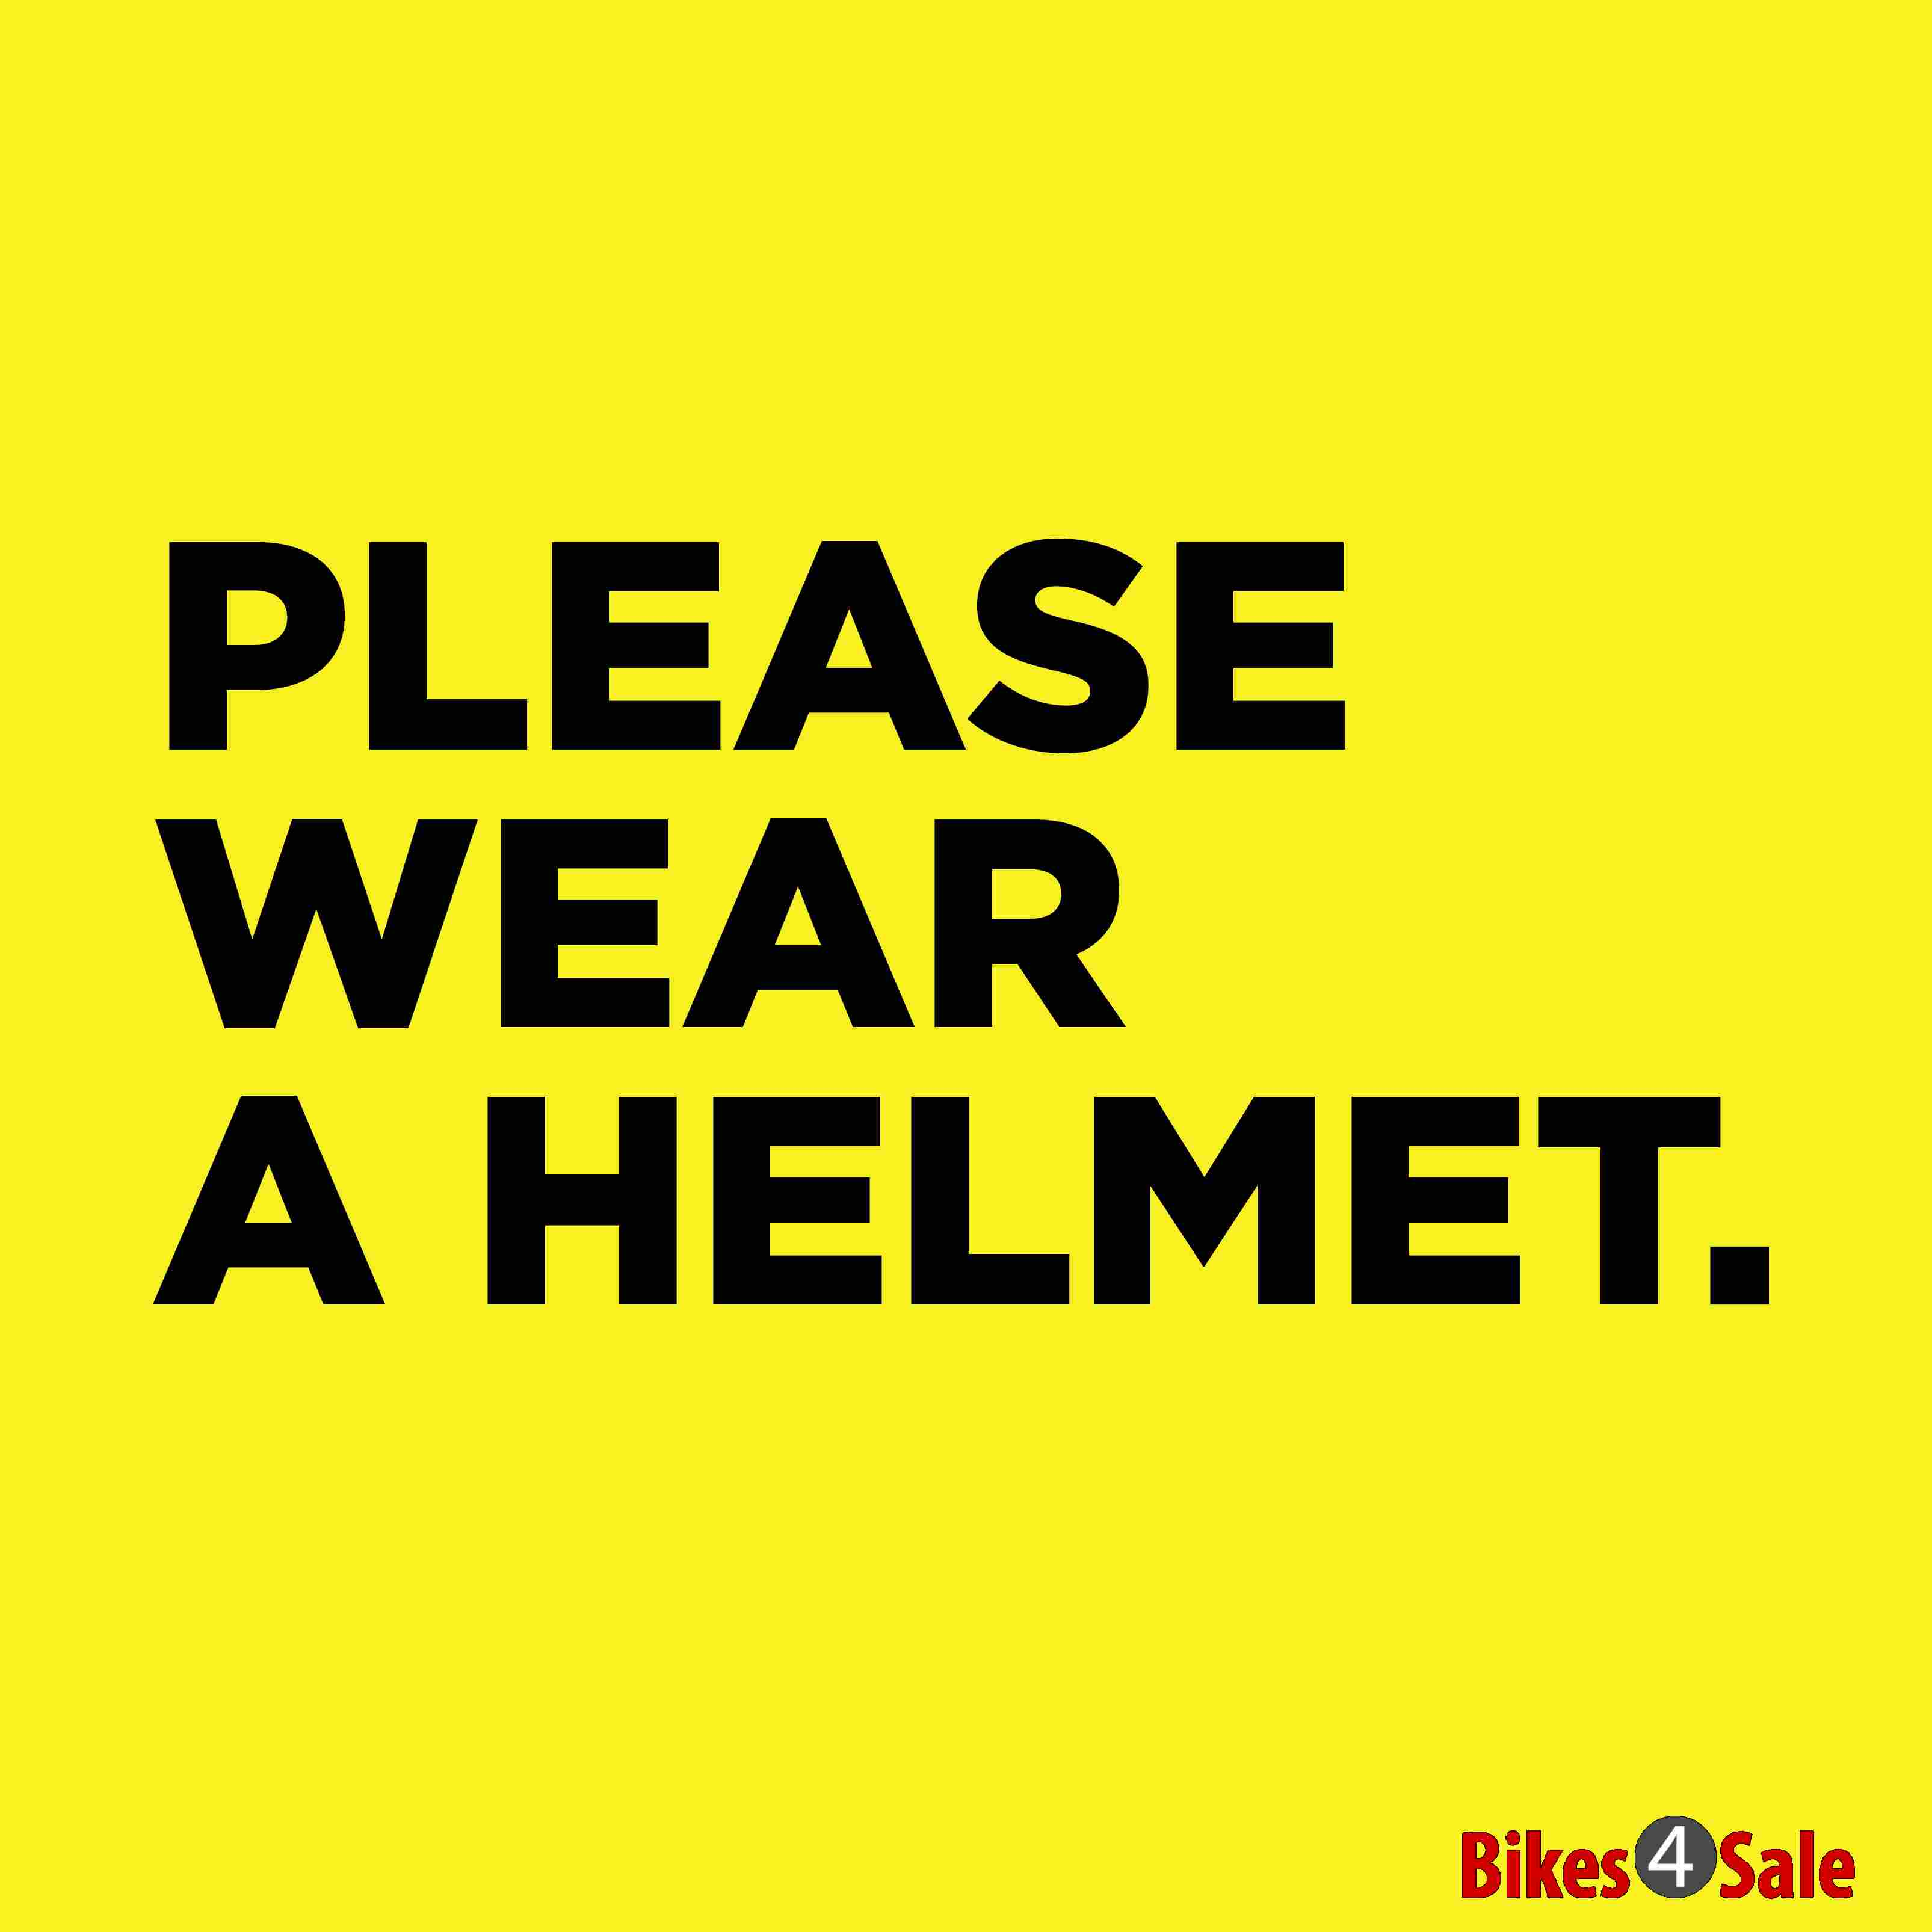 Please Wear Helmet